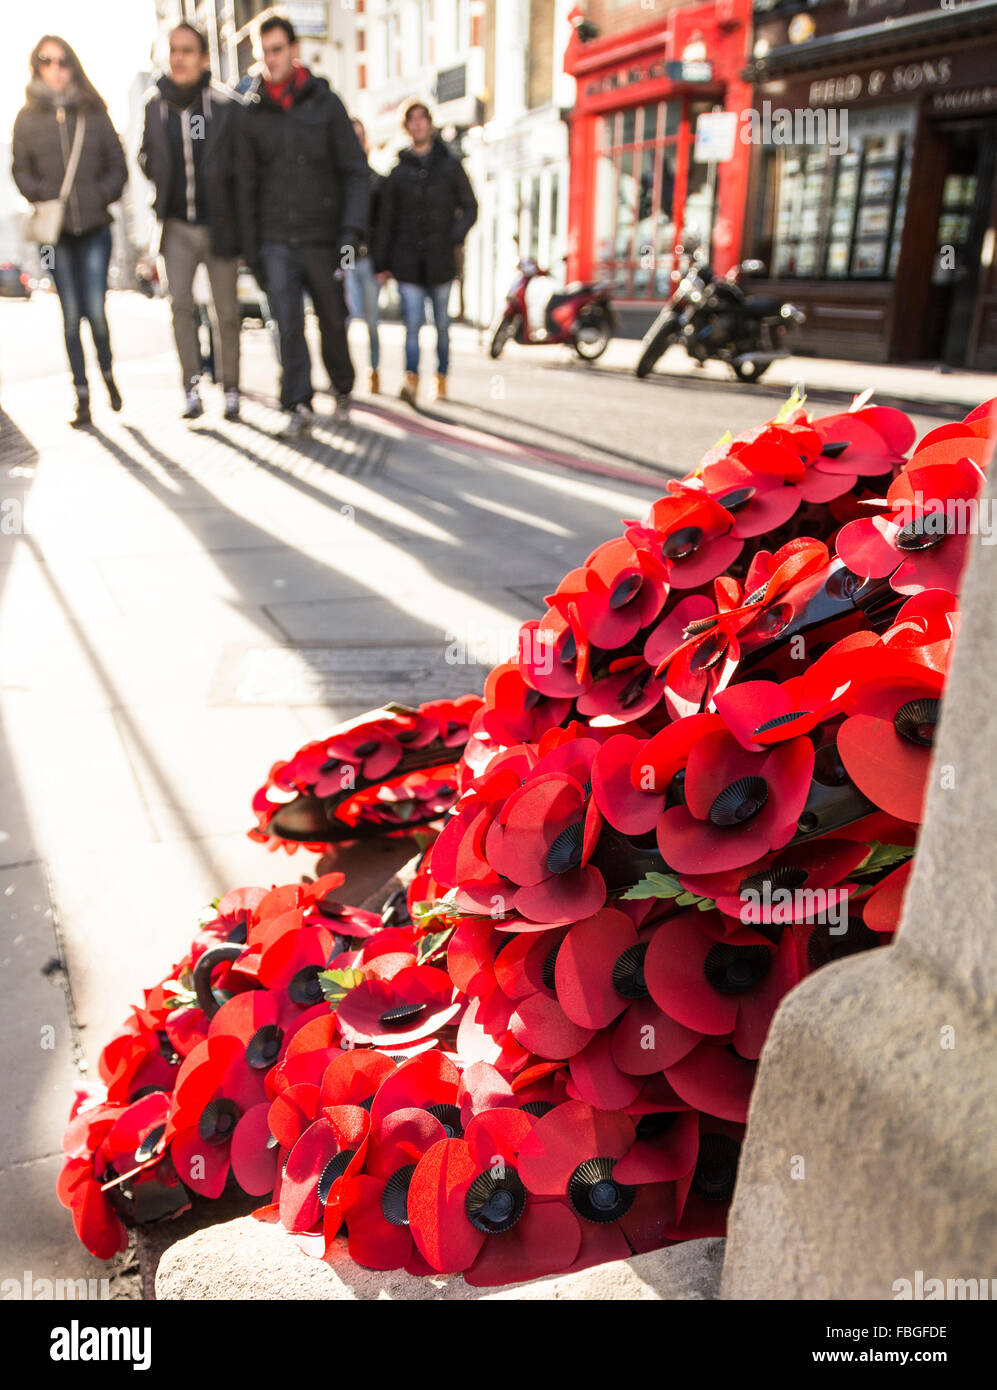 A wreath of red poppies laying in a London street commemorates the sacrifice of men and women in the first & - Stock Image